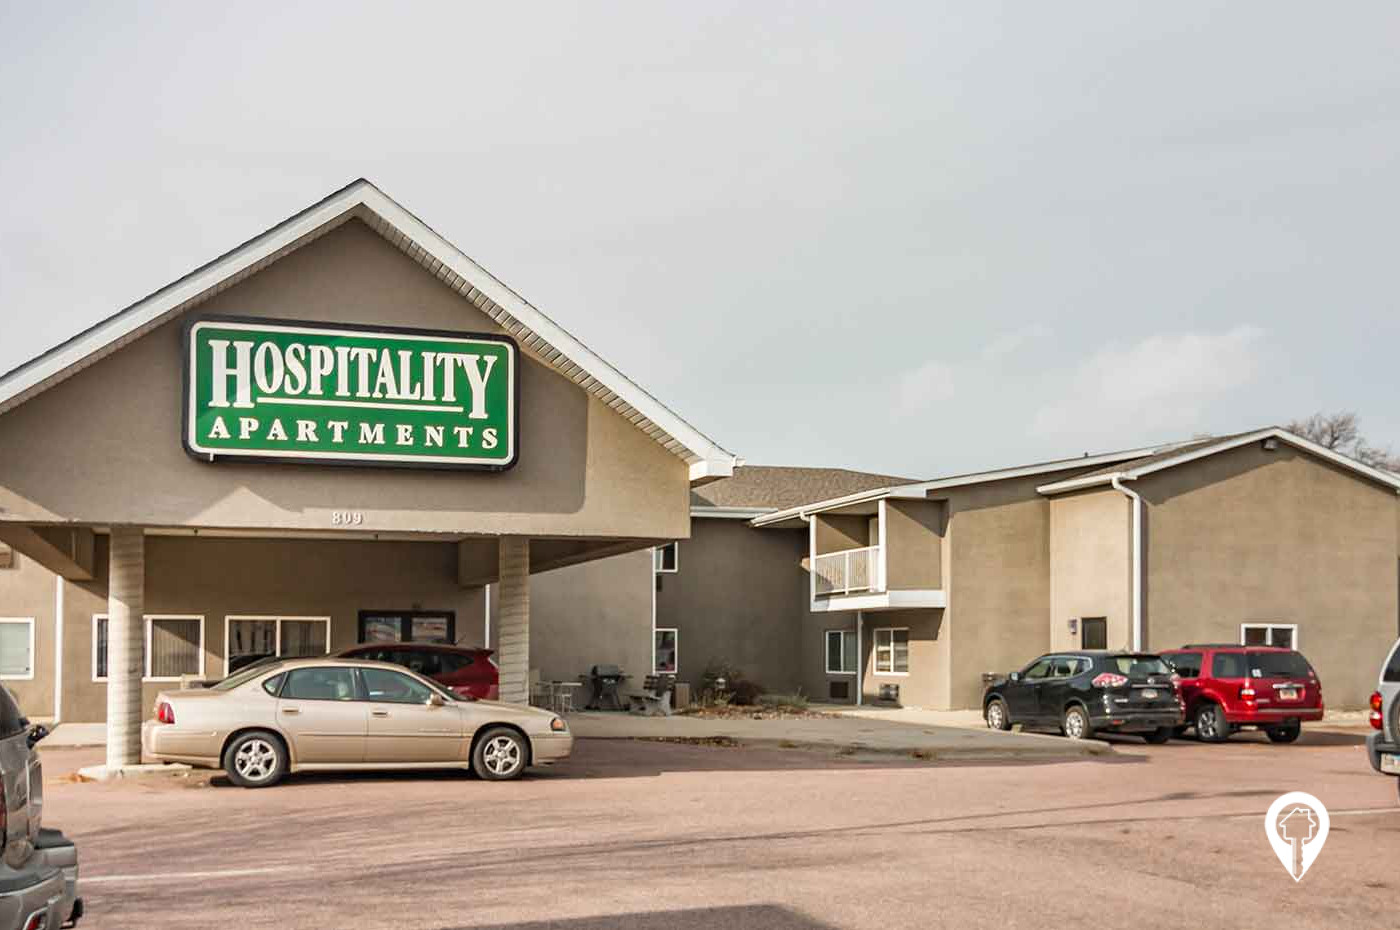 Dunham Property Management - Hospitality Apartments